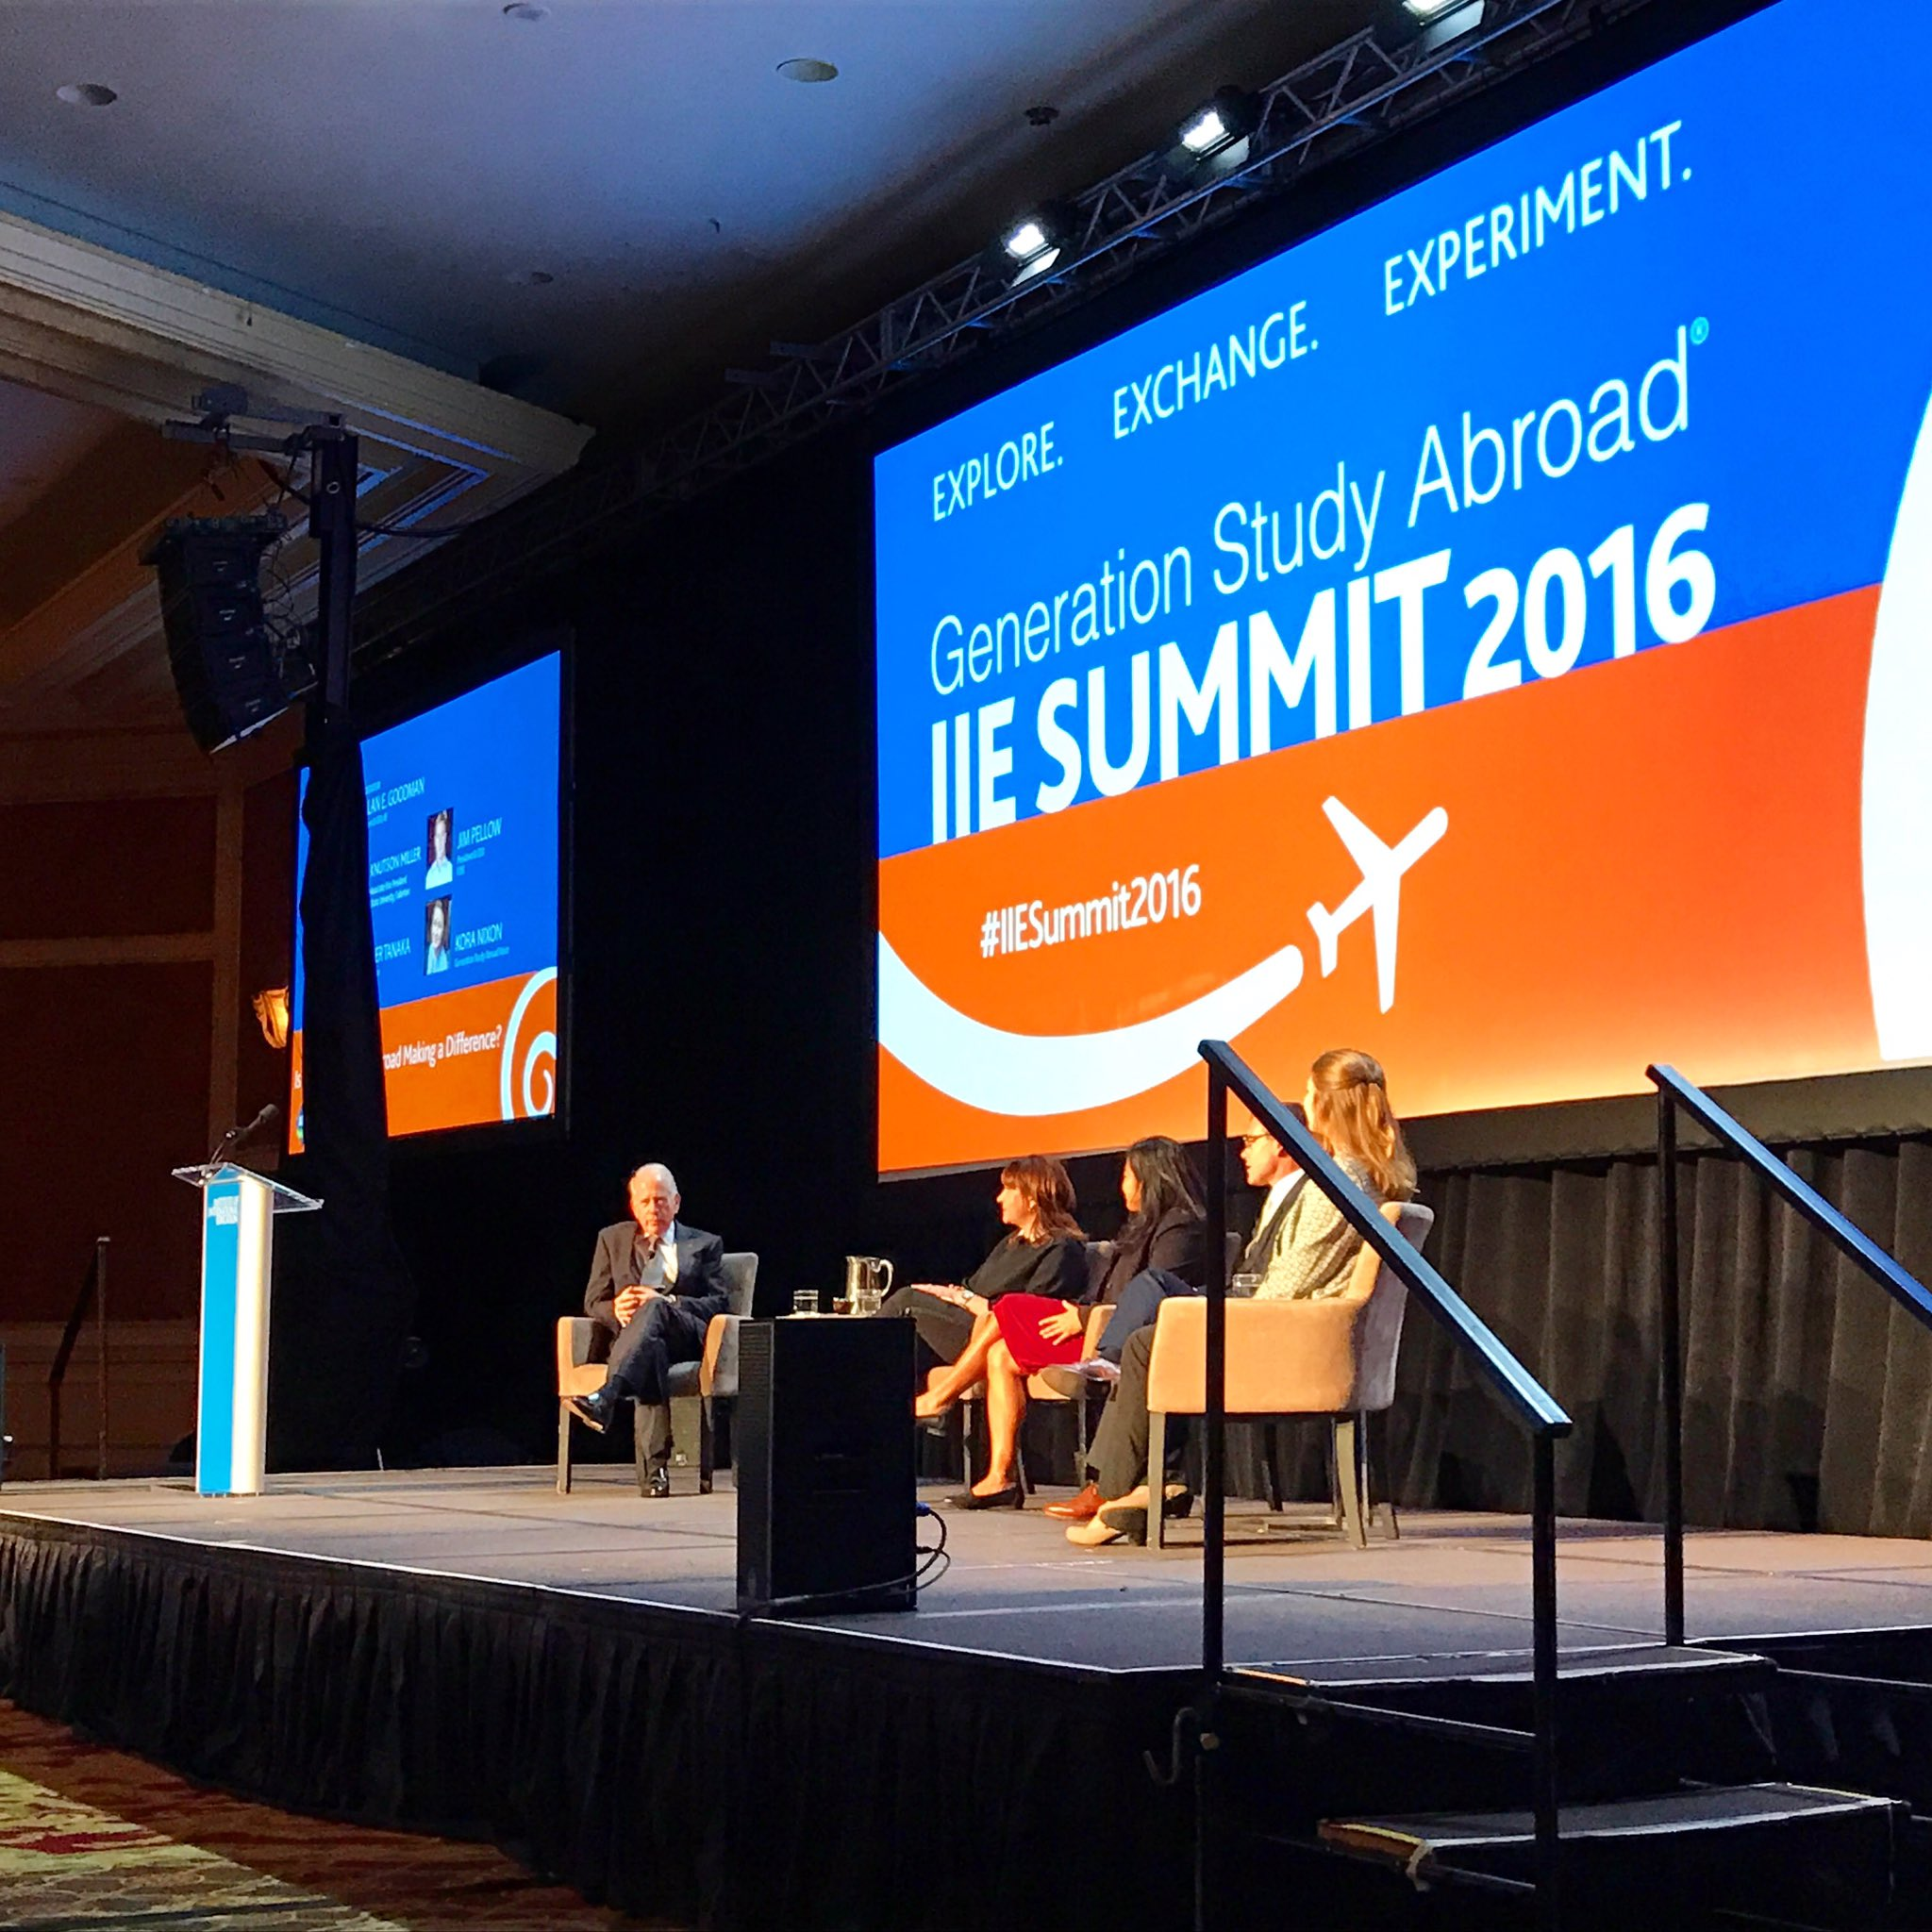 Kicking off the opening plenary at @IIE_Summit in DC with  @PellowCIEE, @IIEGoodman, and friends! #generationstudyabroad #IIESummit2016 https://t.co/CbXa0221nJ